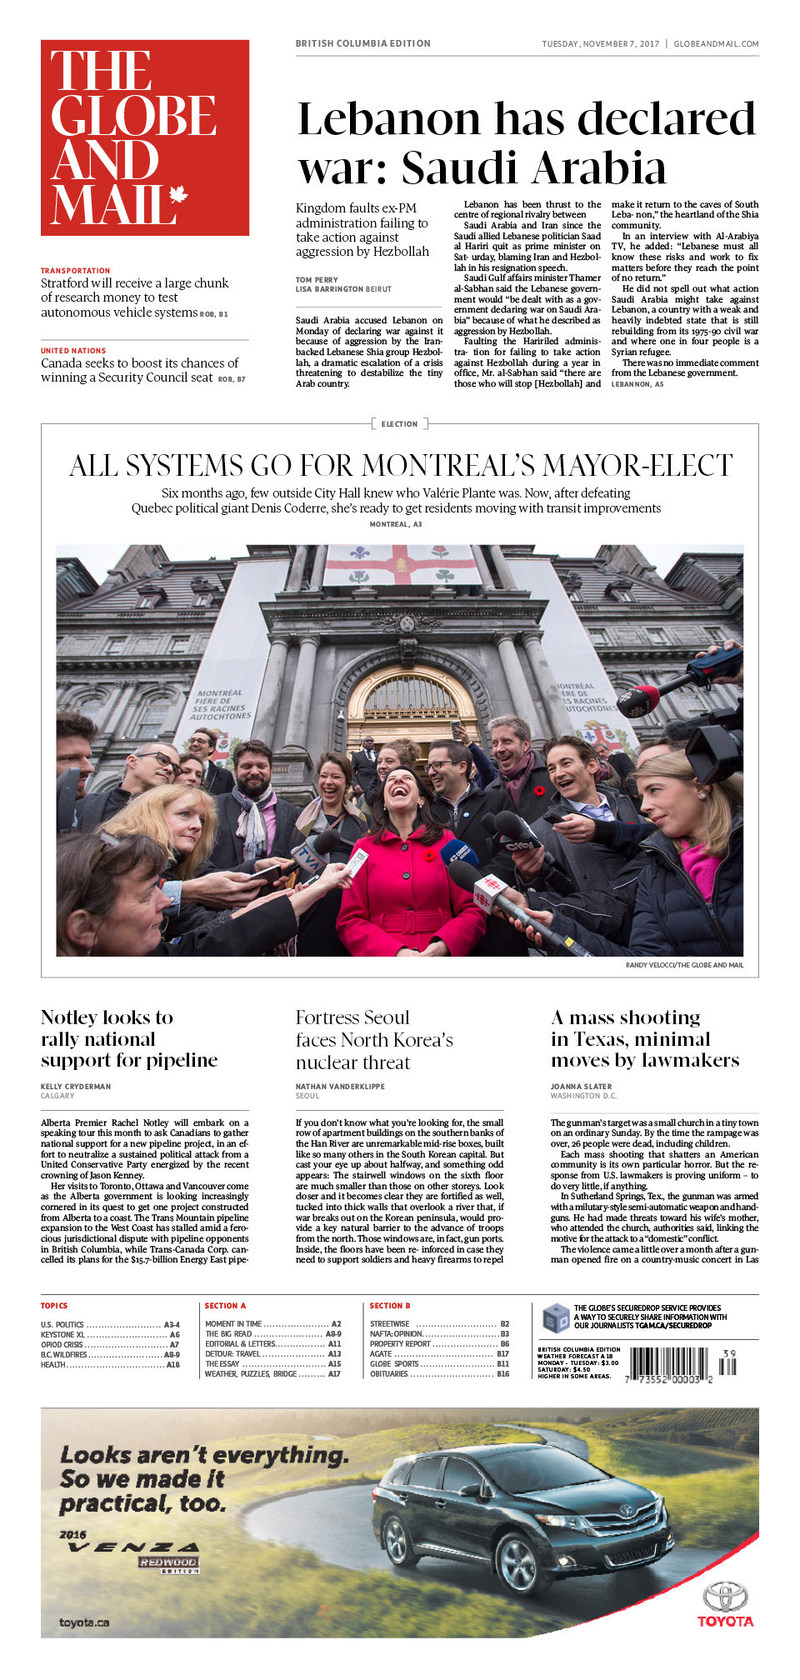 Example of the new redesigned Globe and Mail. (CNW Group/The Globe and Mail)